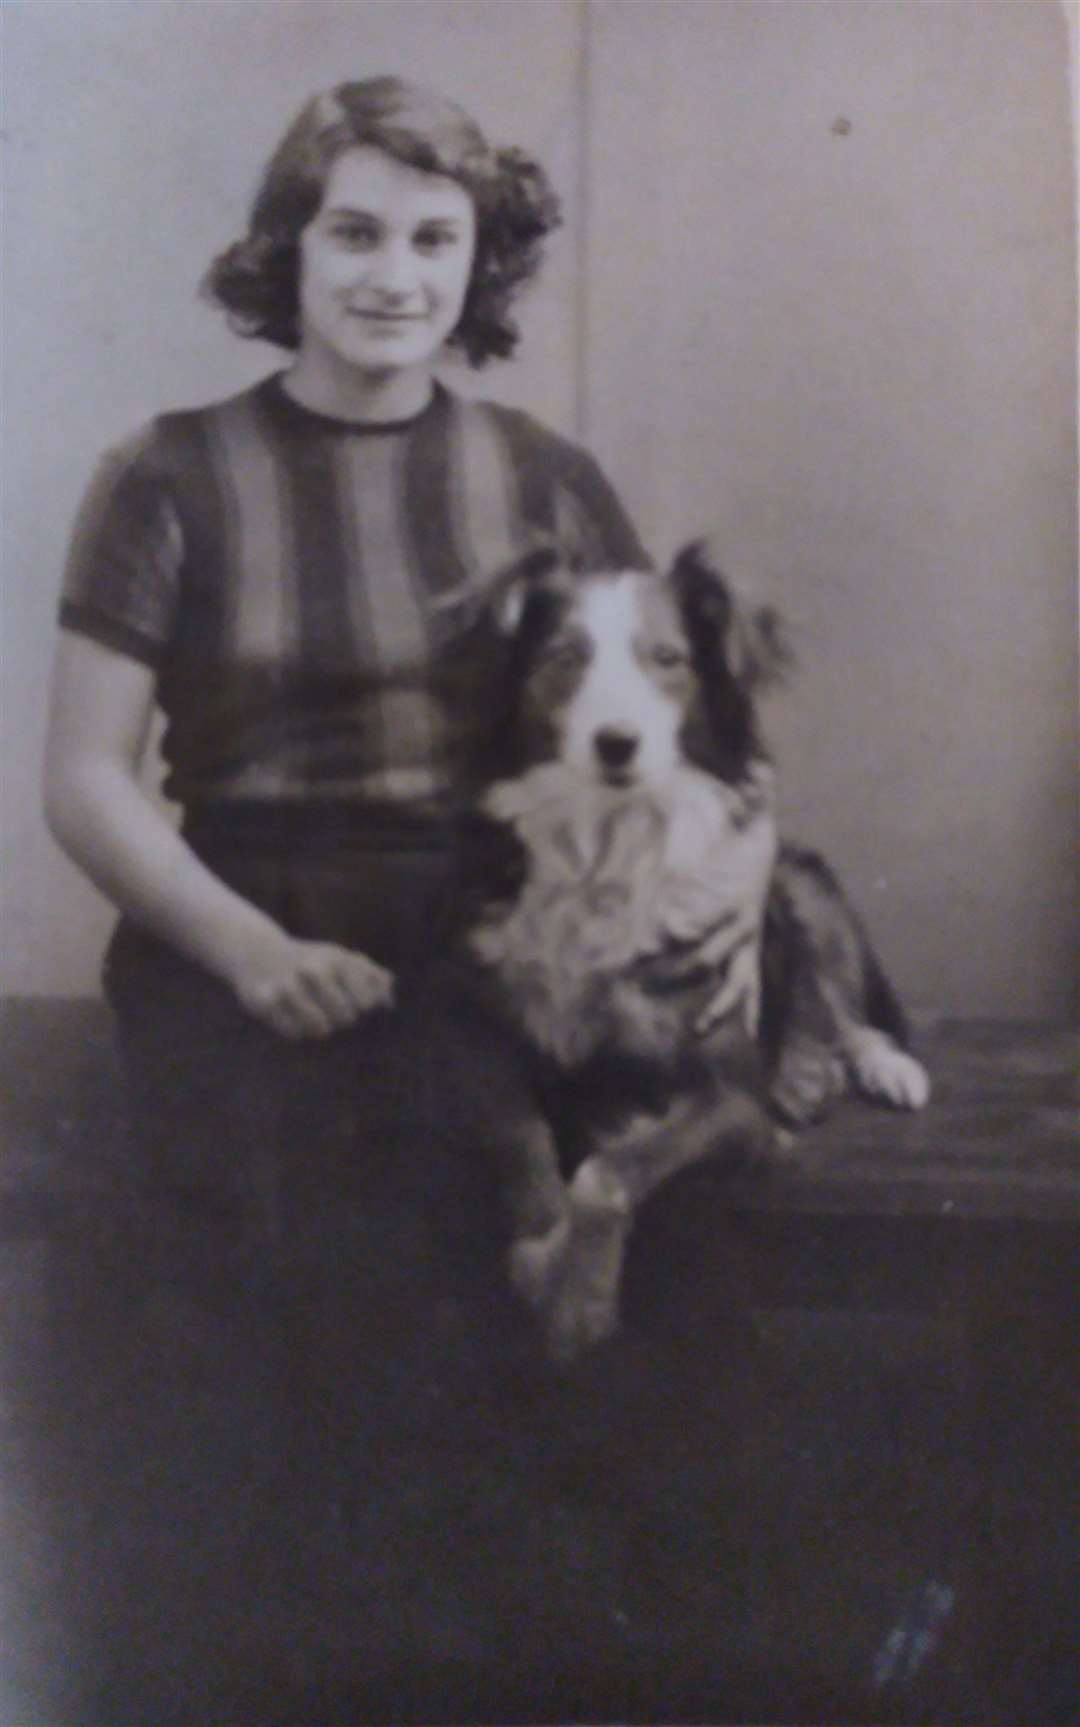 June Mackenzie in 1943 (9946729)